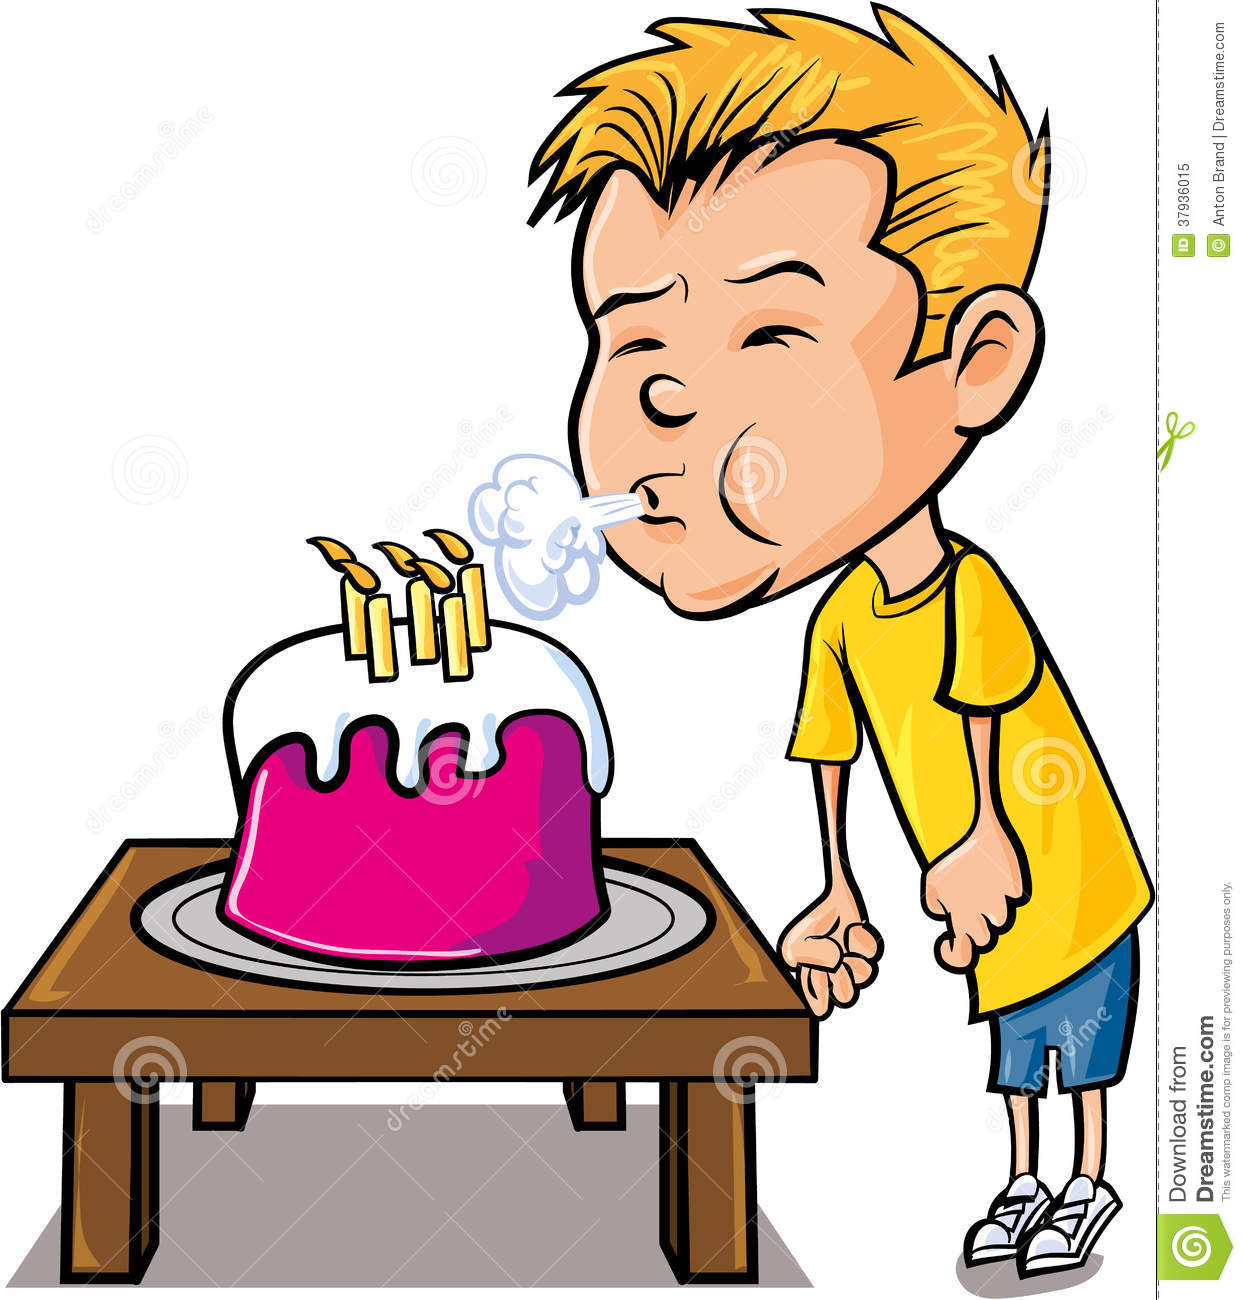 Blow candles clipart.